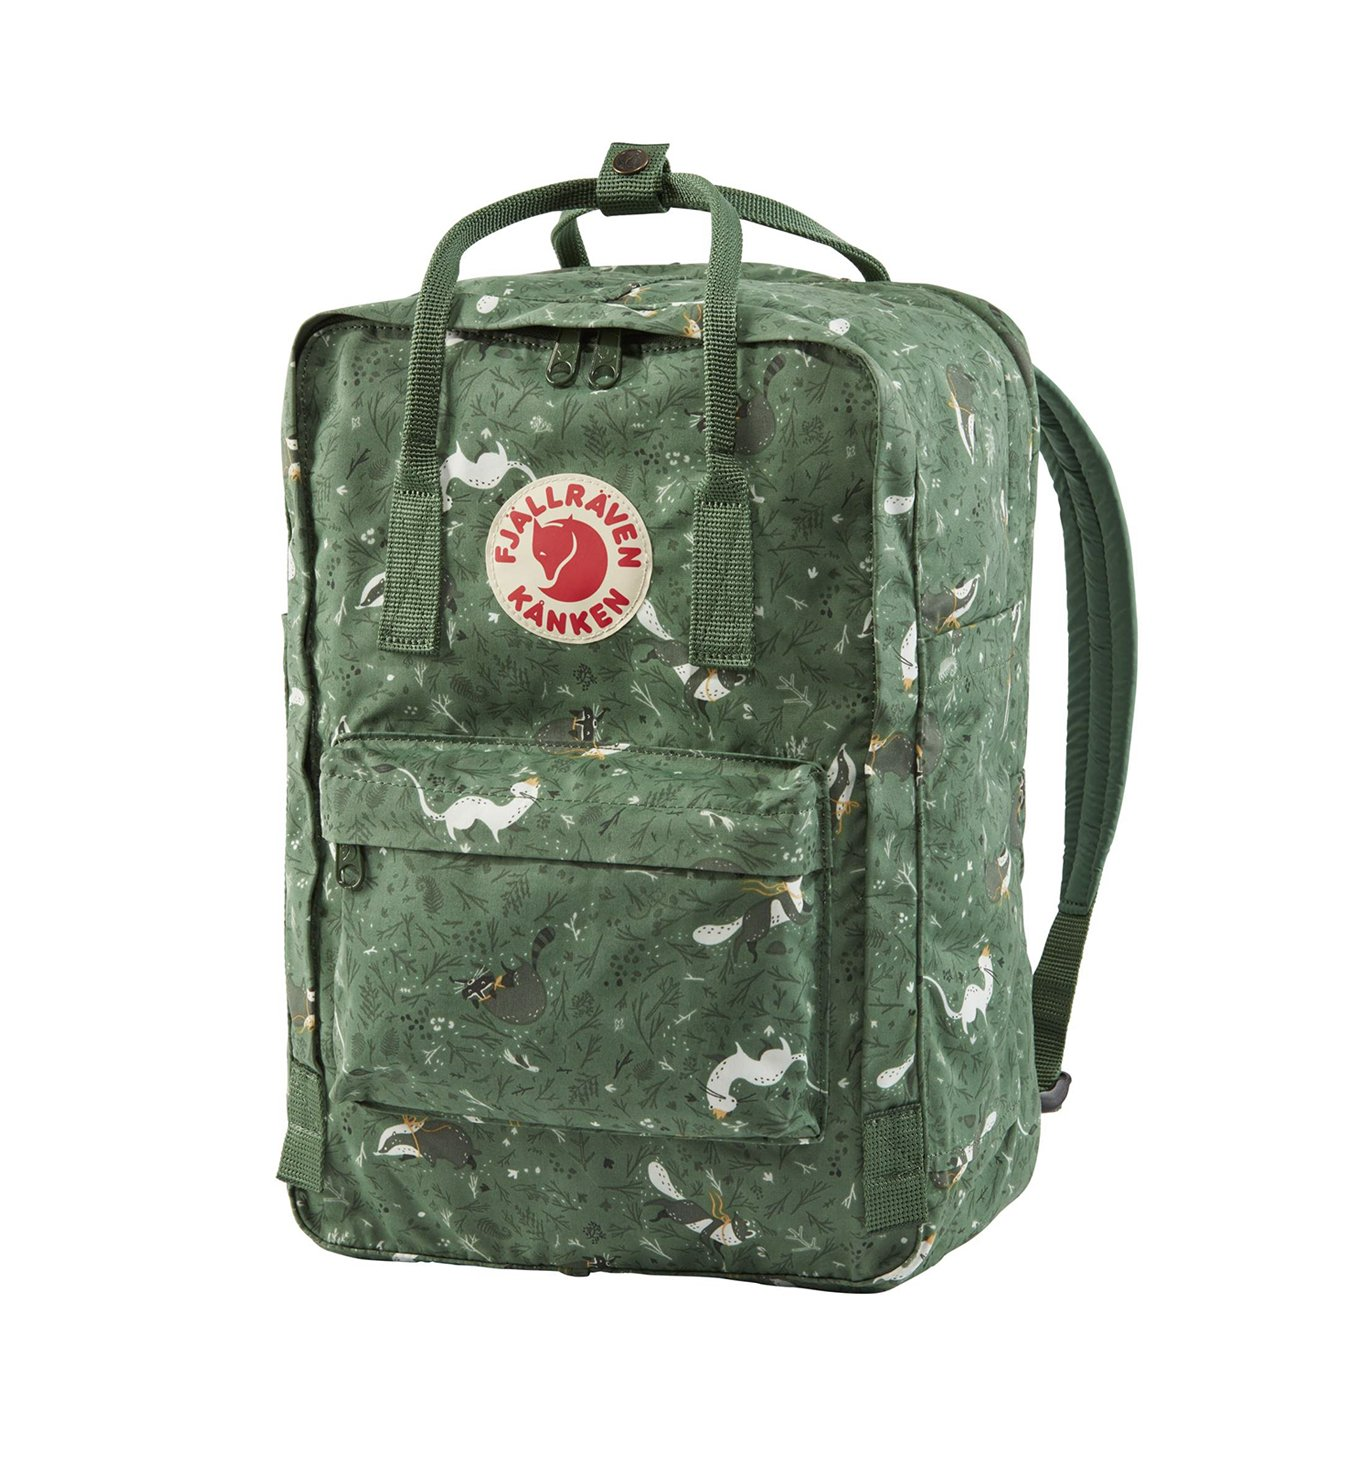 e617cea103c02 Fjallraven Kanken Art Laptop 15 Green Fable | MARKI \ FJALLRAVEN ...